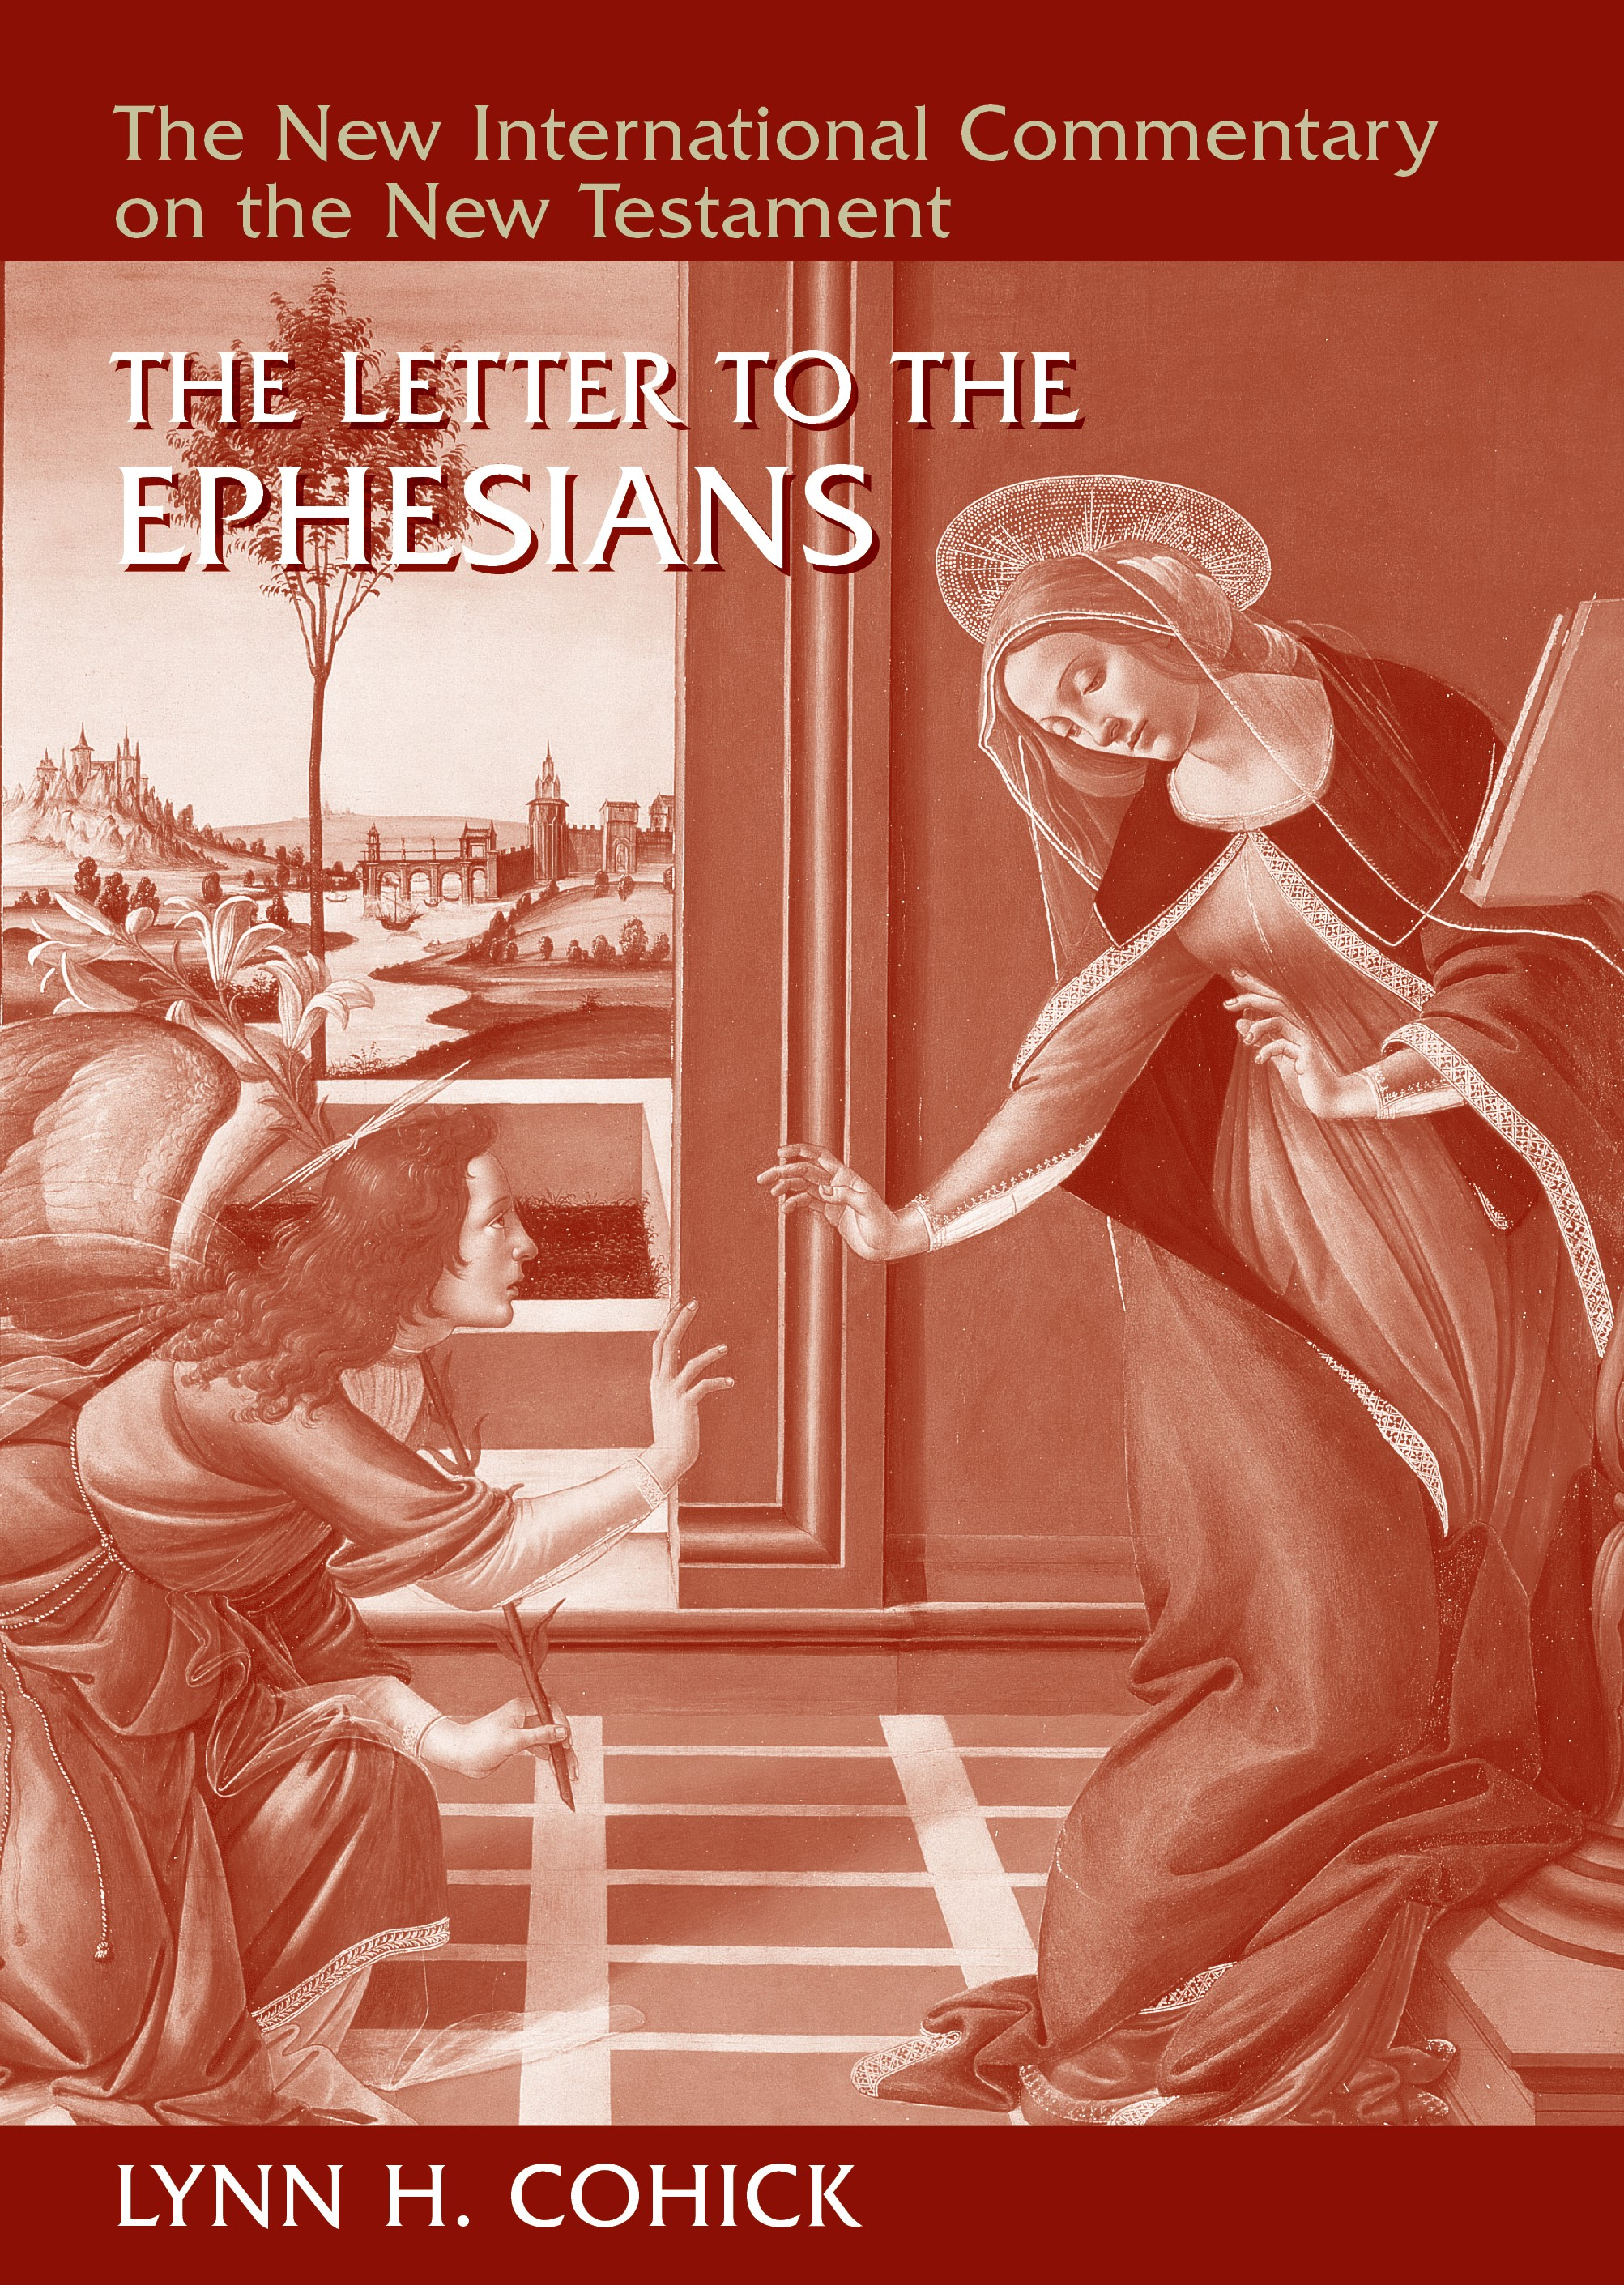 The Letter to the Ephesians (NICNT)